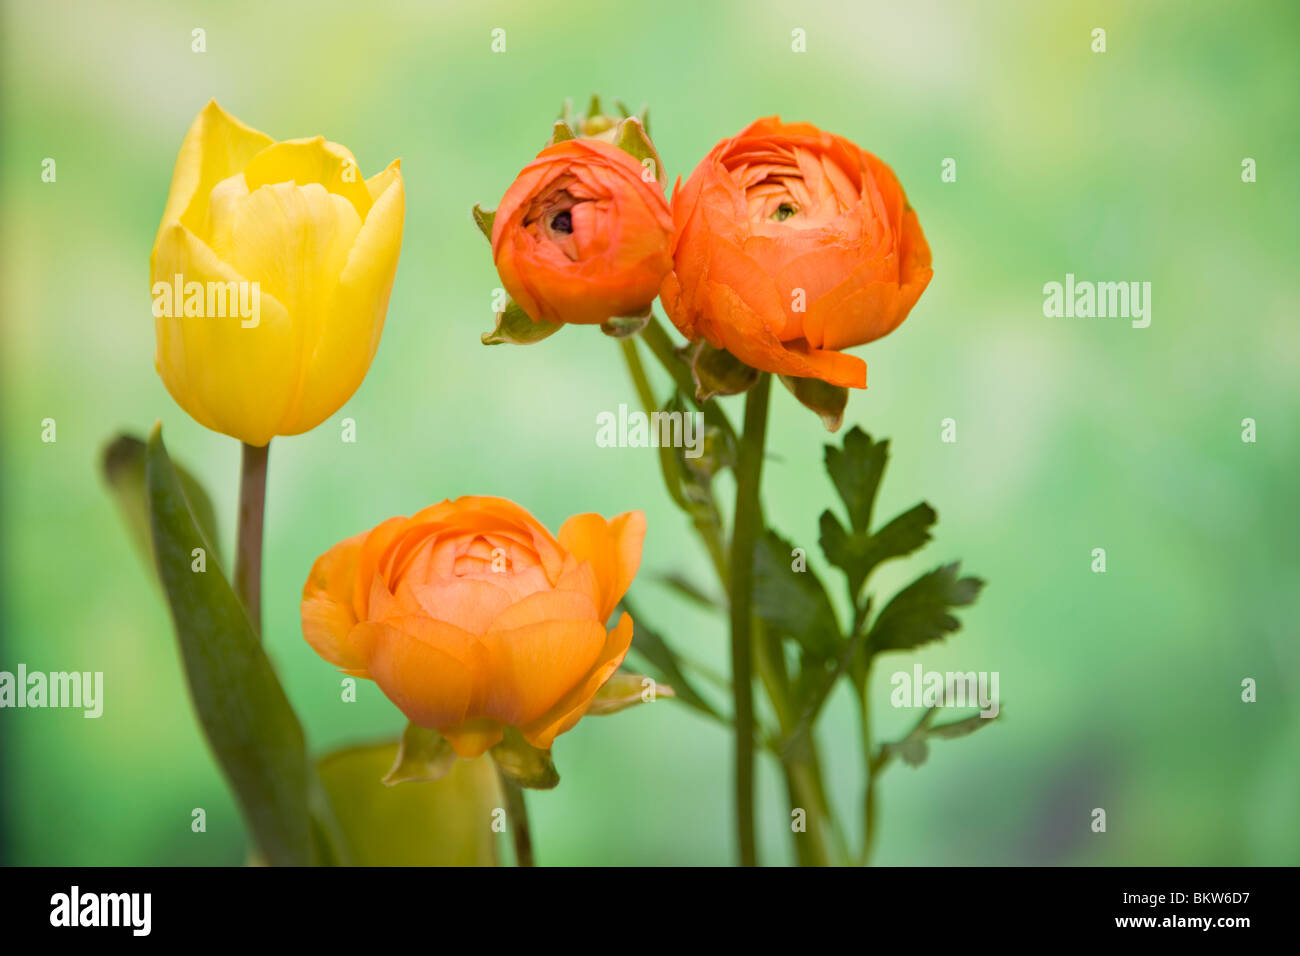 Various tulips - Stock Image